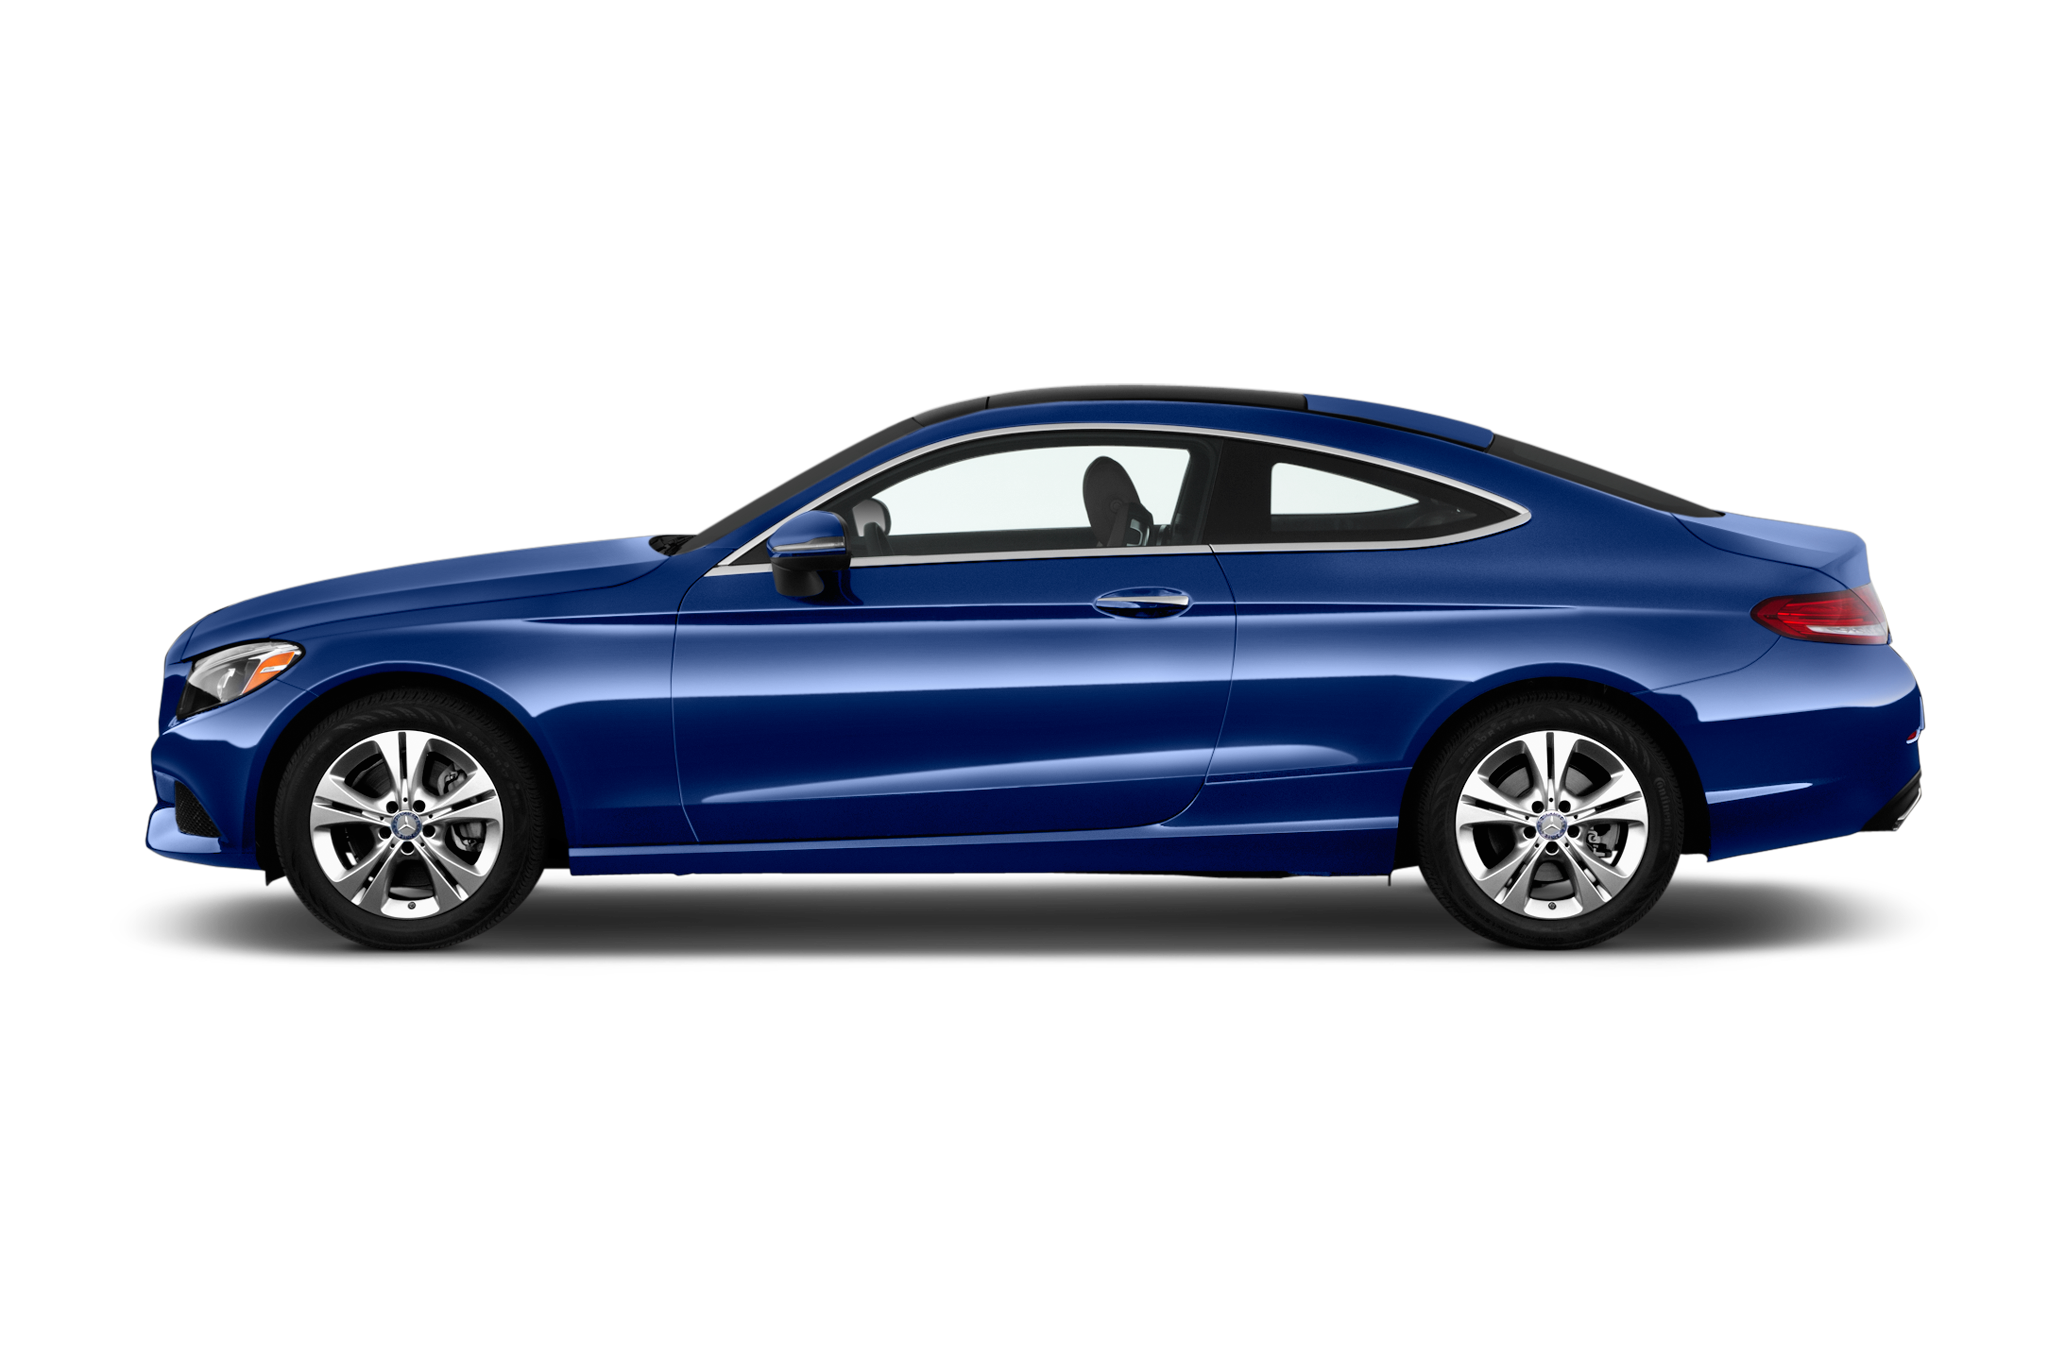 2017 Mercedes Benz C Class Cabriolet Drops Its Roof In Teaser Image Sprinter Wiring Diagram Additionally 40 197